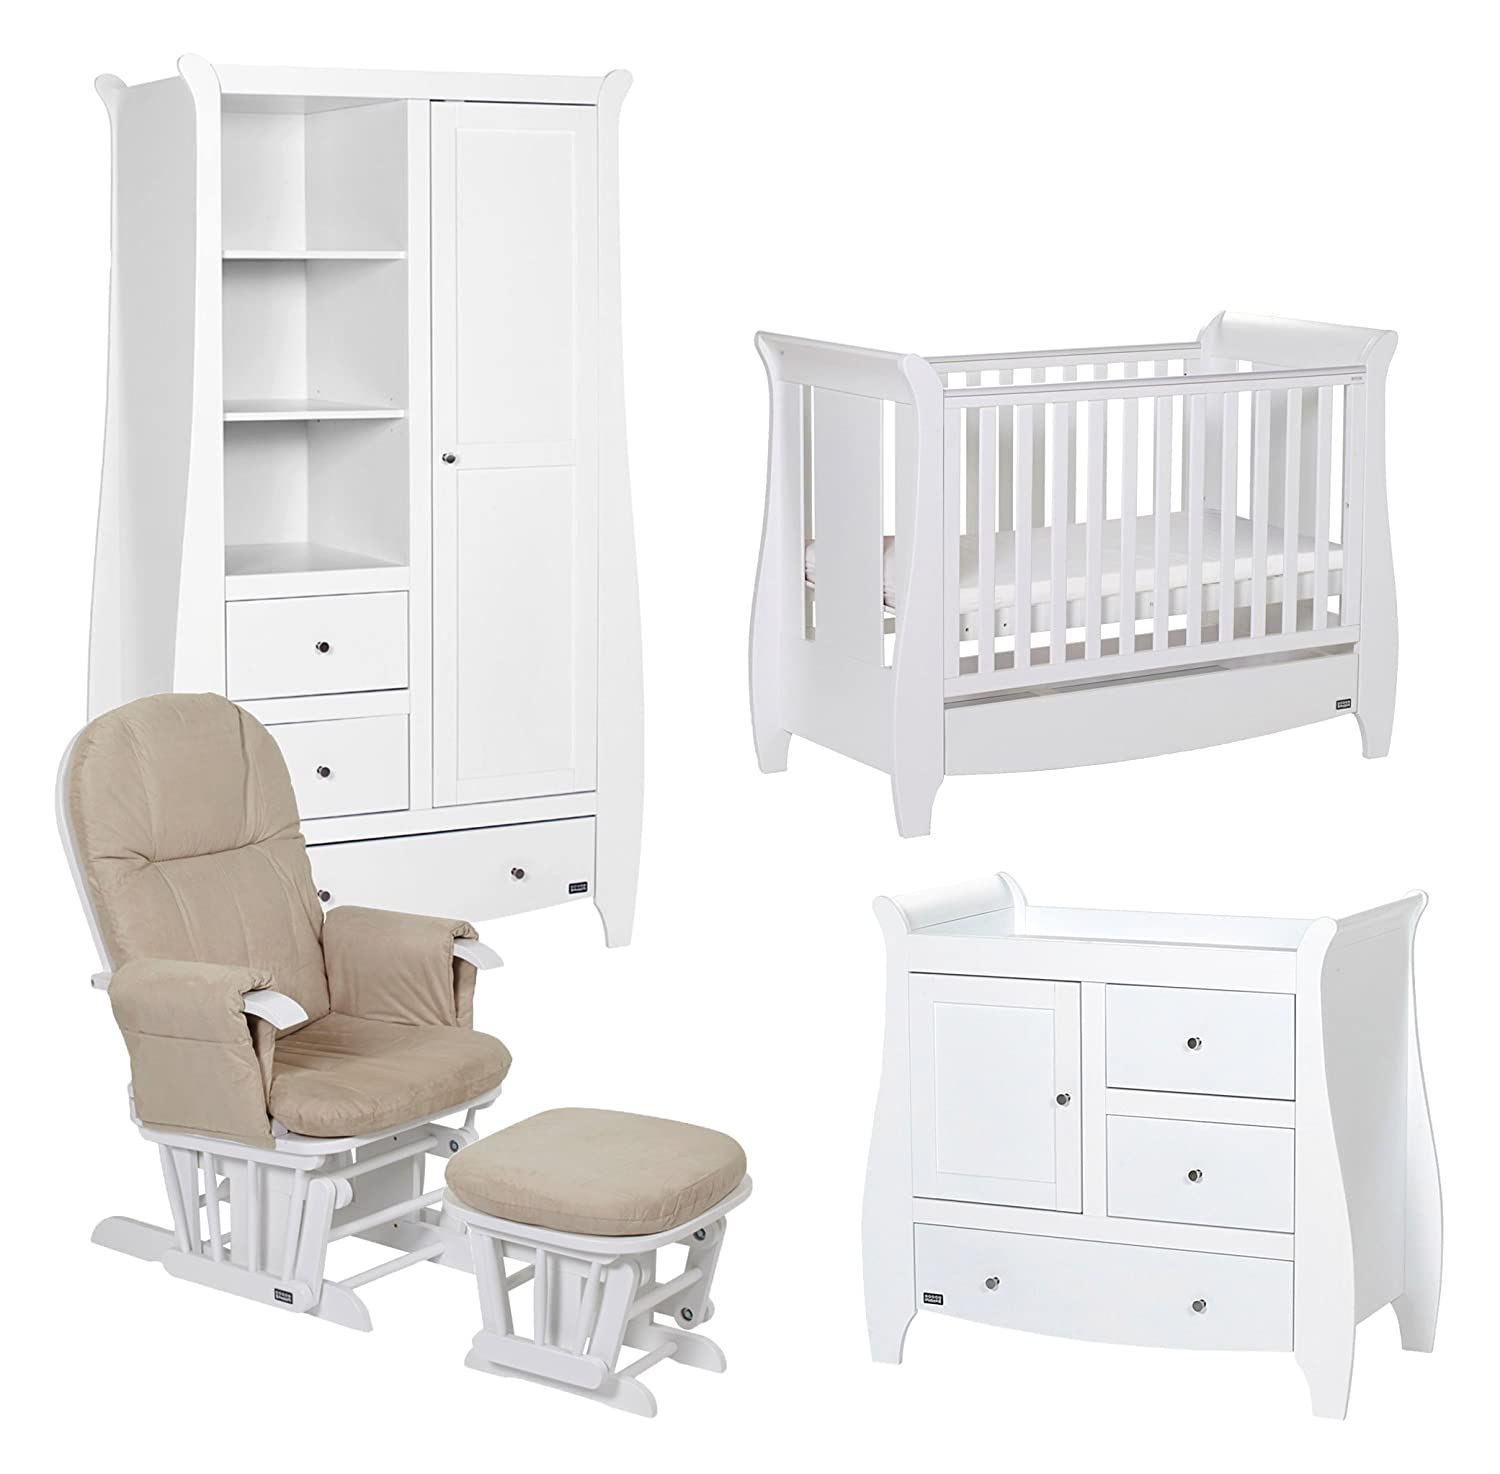 Tutti Bambini Katie Room Set with White Finish, 5-Piece 139RS5/11